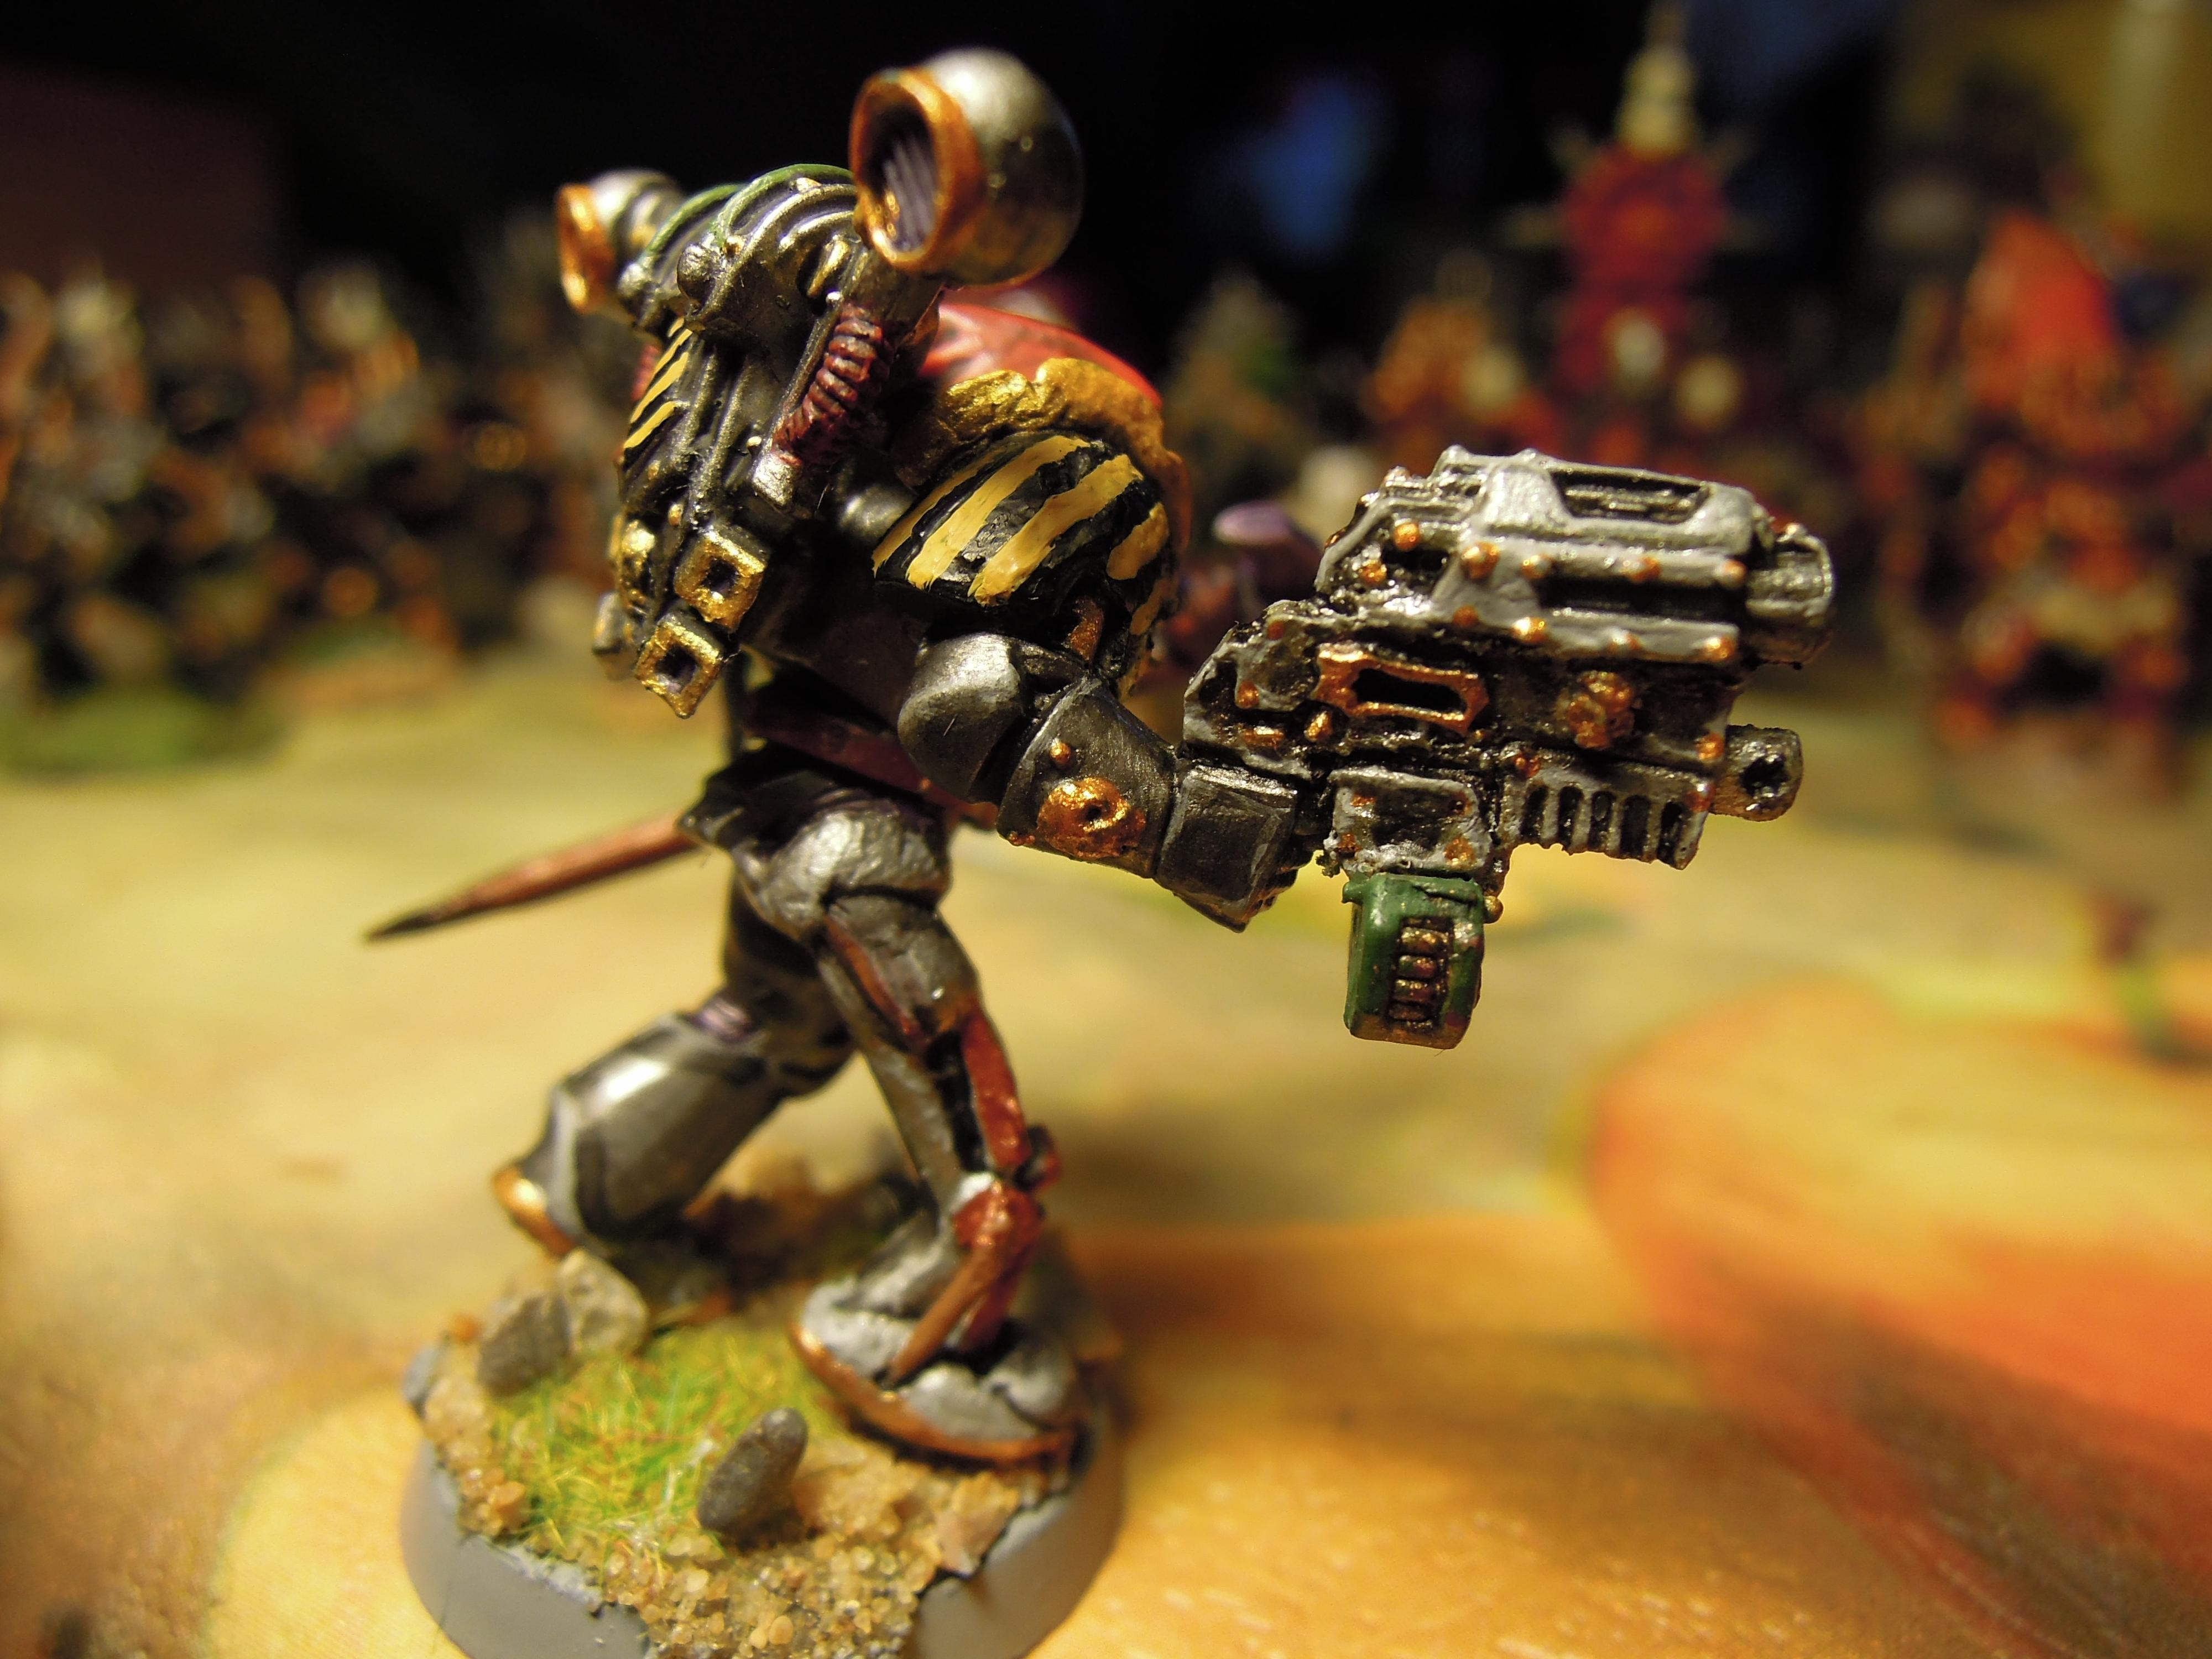 Bolter, Chaos, Chaos Space Marines, Chaos Undivided, Combi Weapon, Conversion, Hazard Stripe, Heretic Astartes, Iron Warriors, Iron Within, Iron Without!, Power Staff, Traitor Legions, Warhammer 40,000, Warsmith